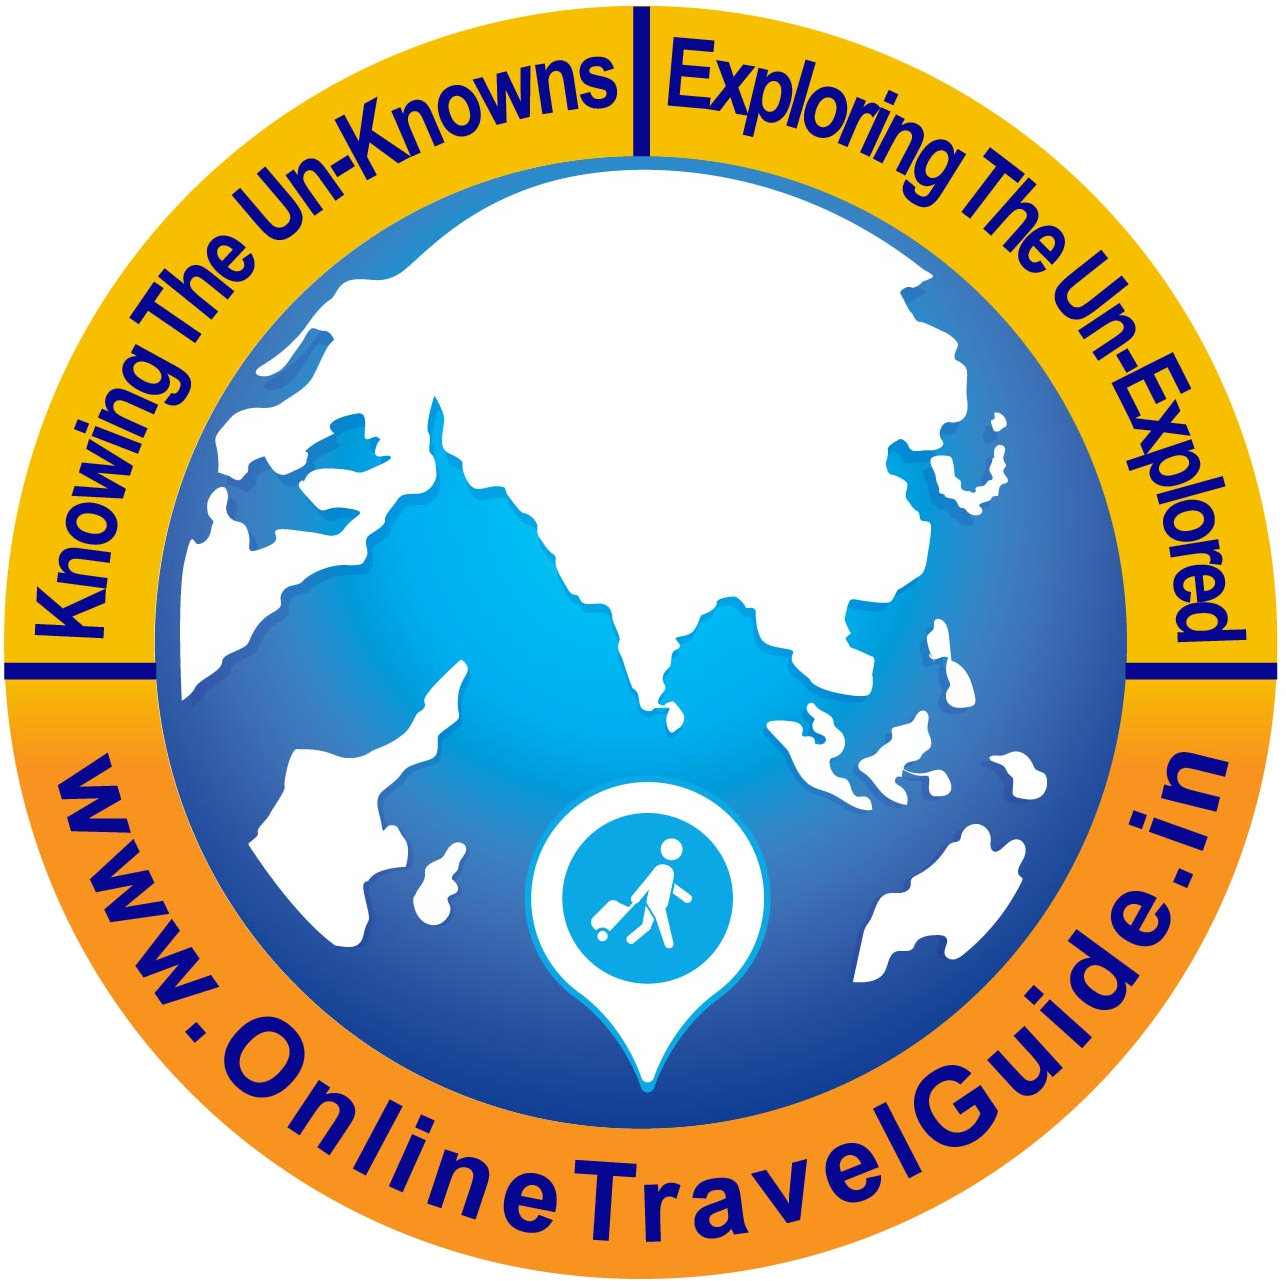 Online Travel Guide